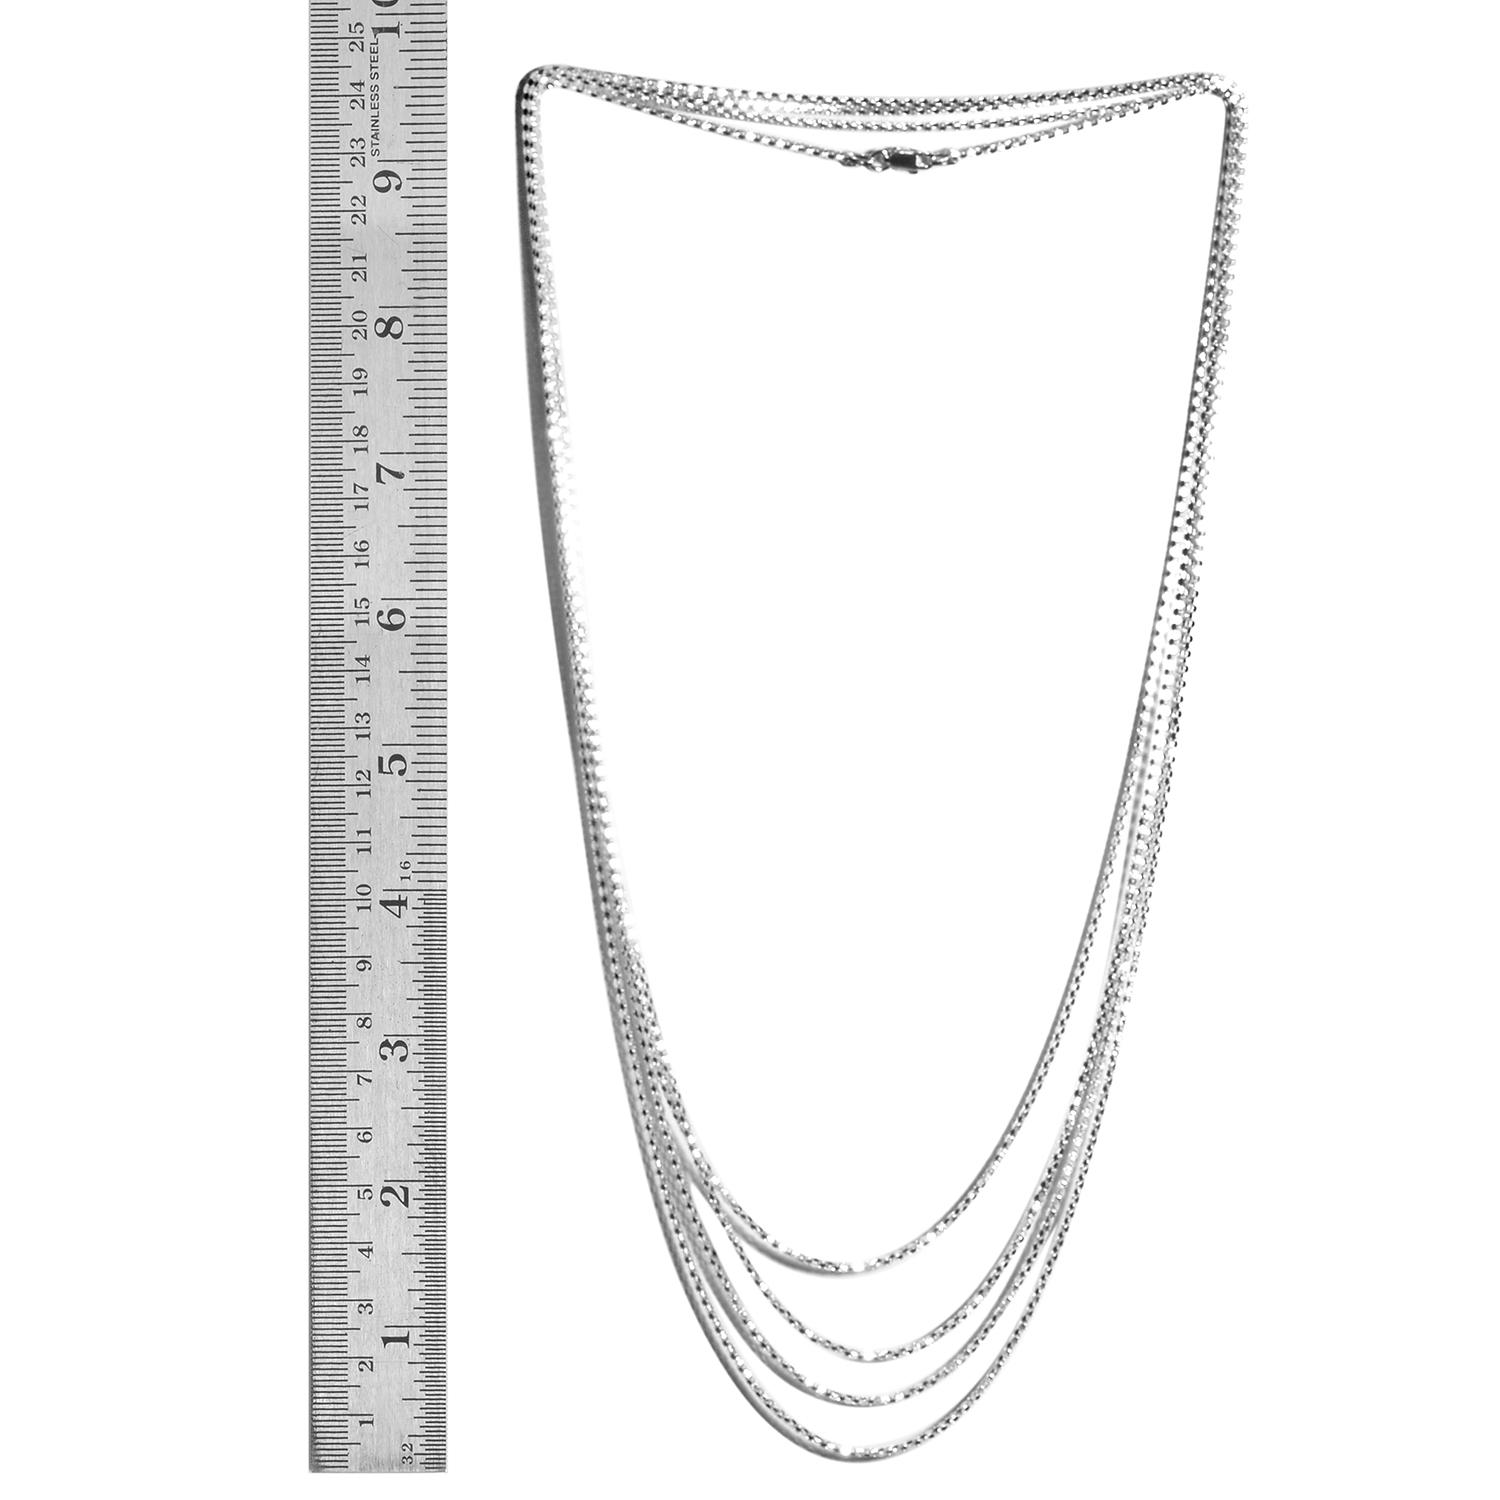 sterling silver endless mirror necklace 100 in 14 8 g necklaces